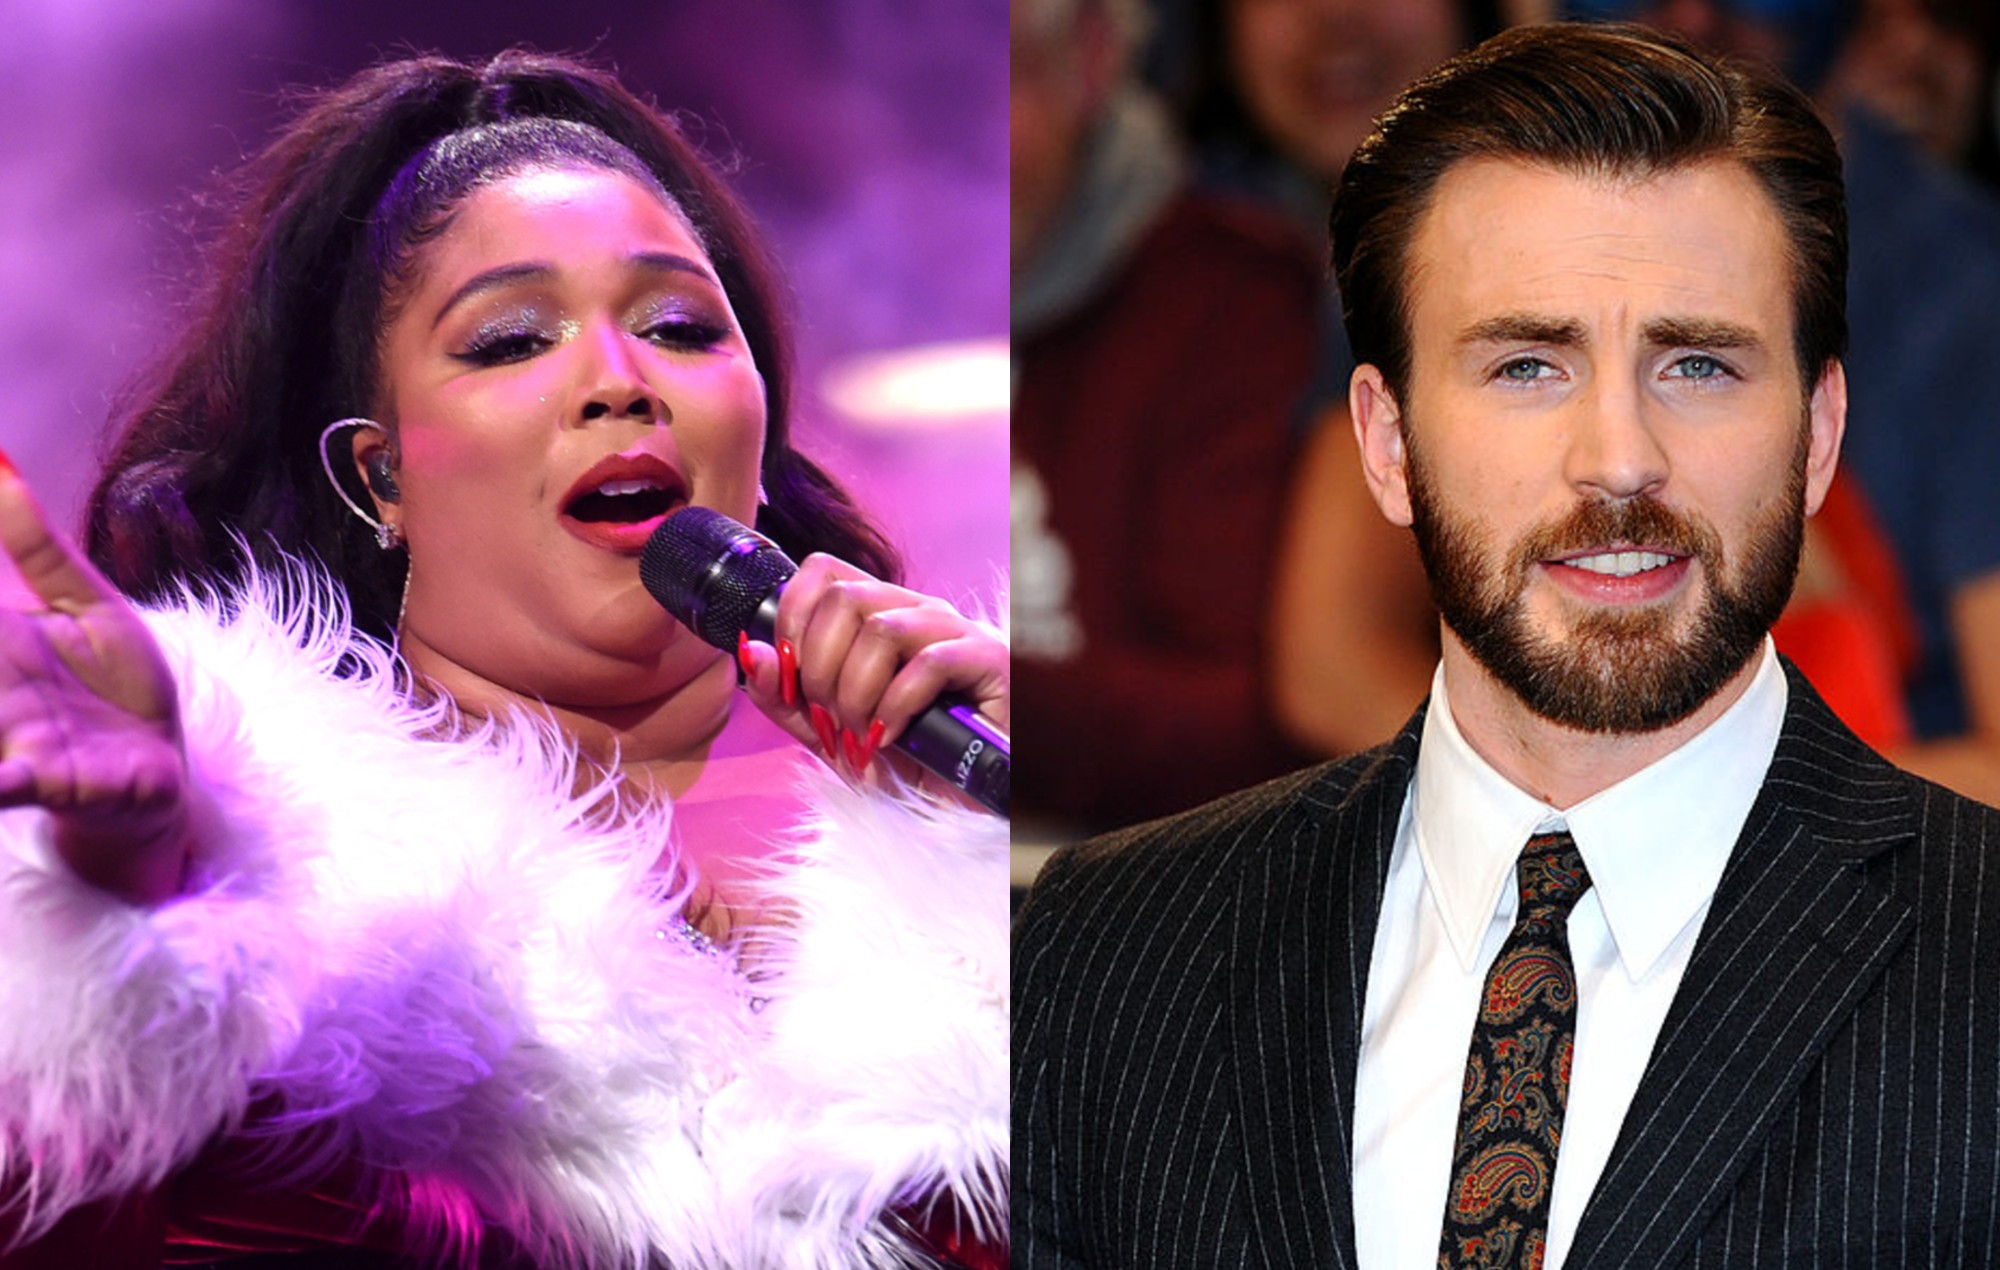 Lizzo and Chris Evans